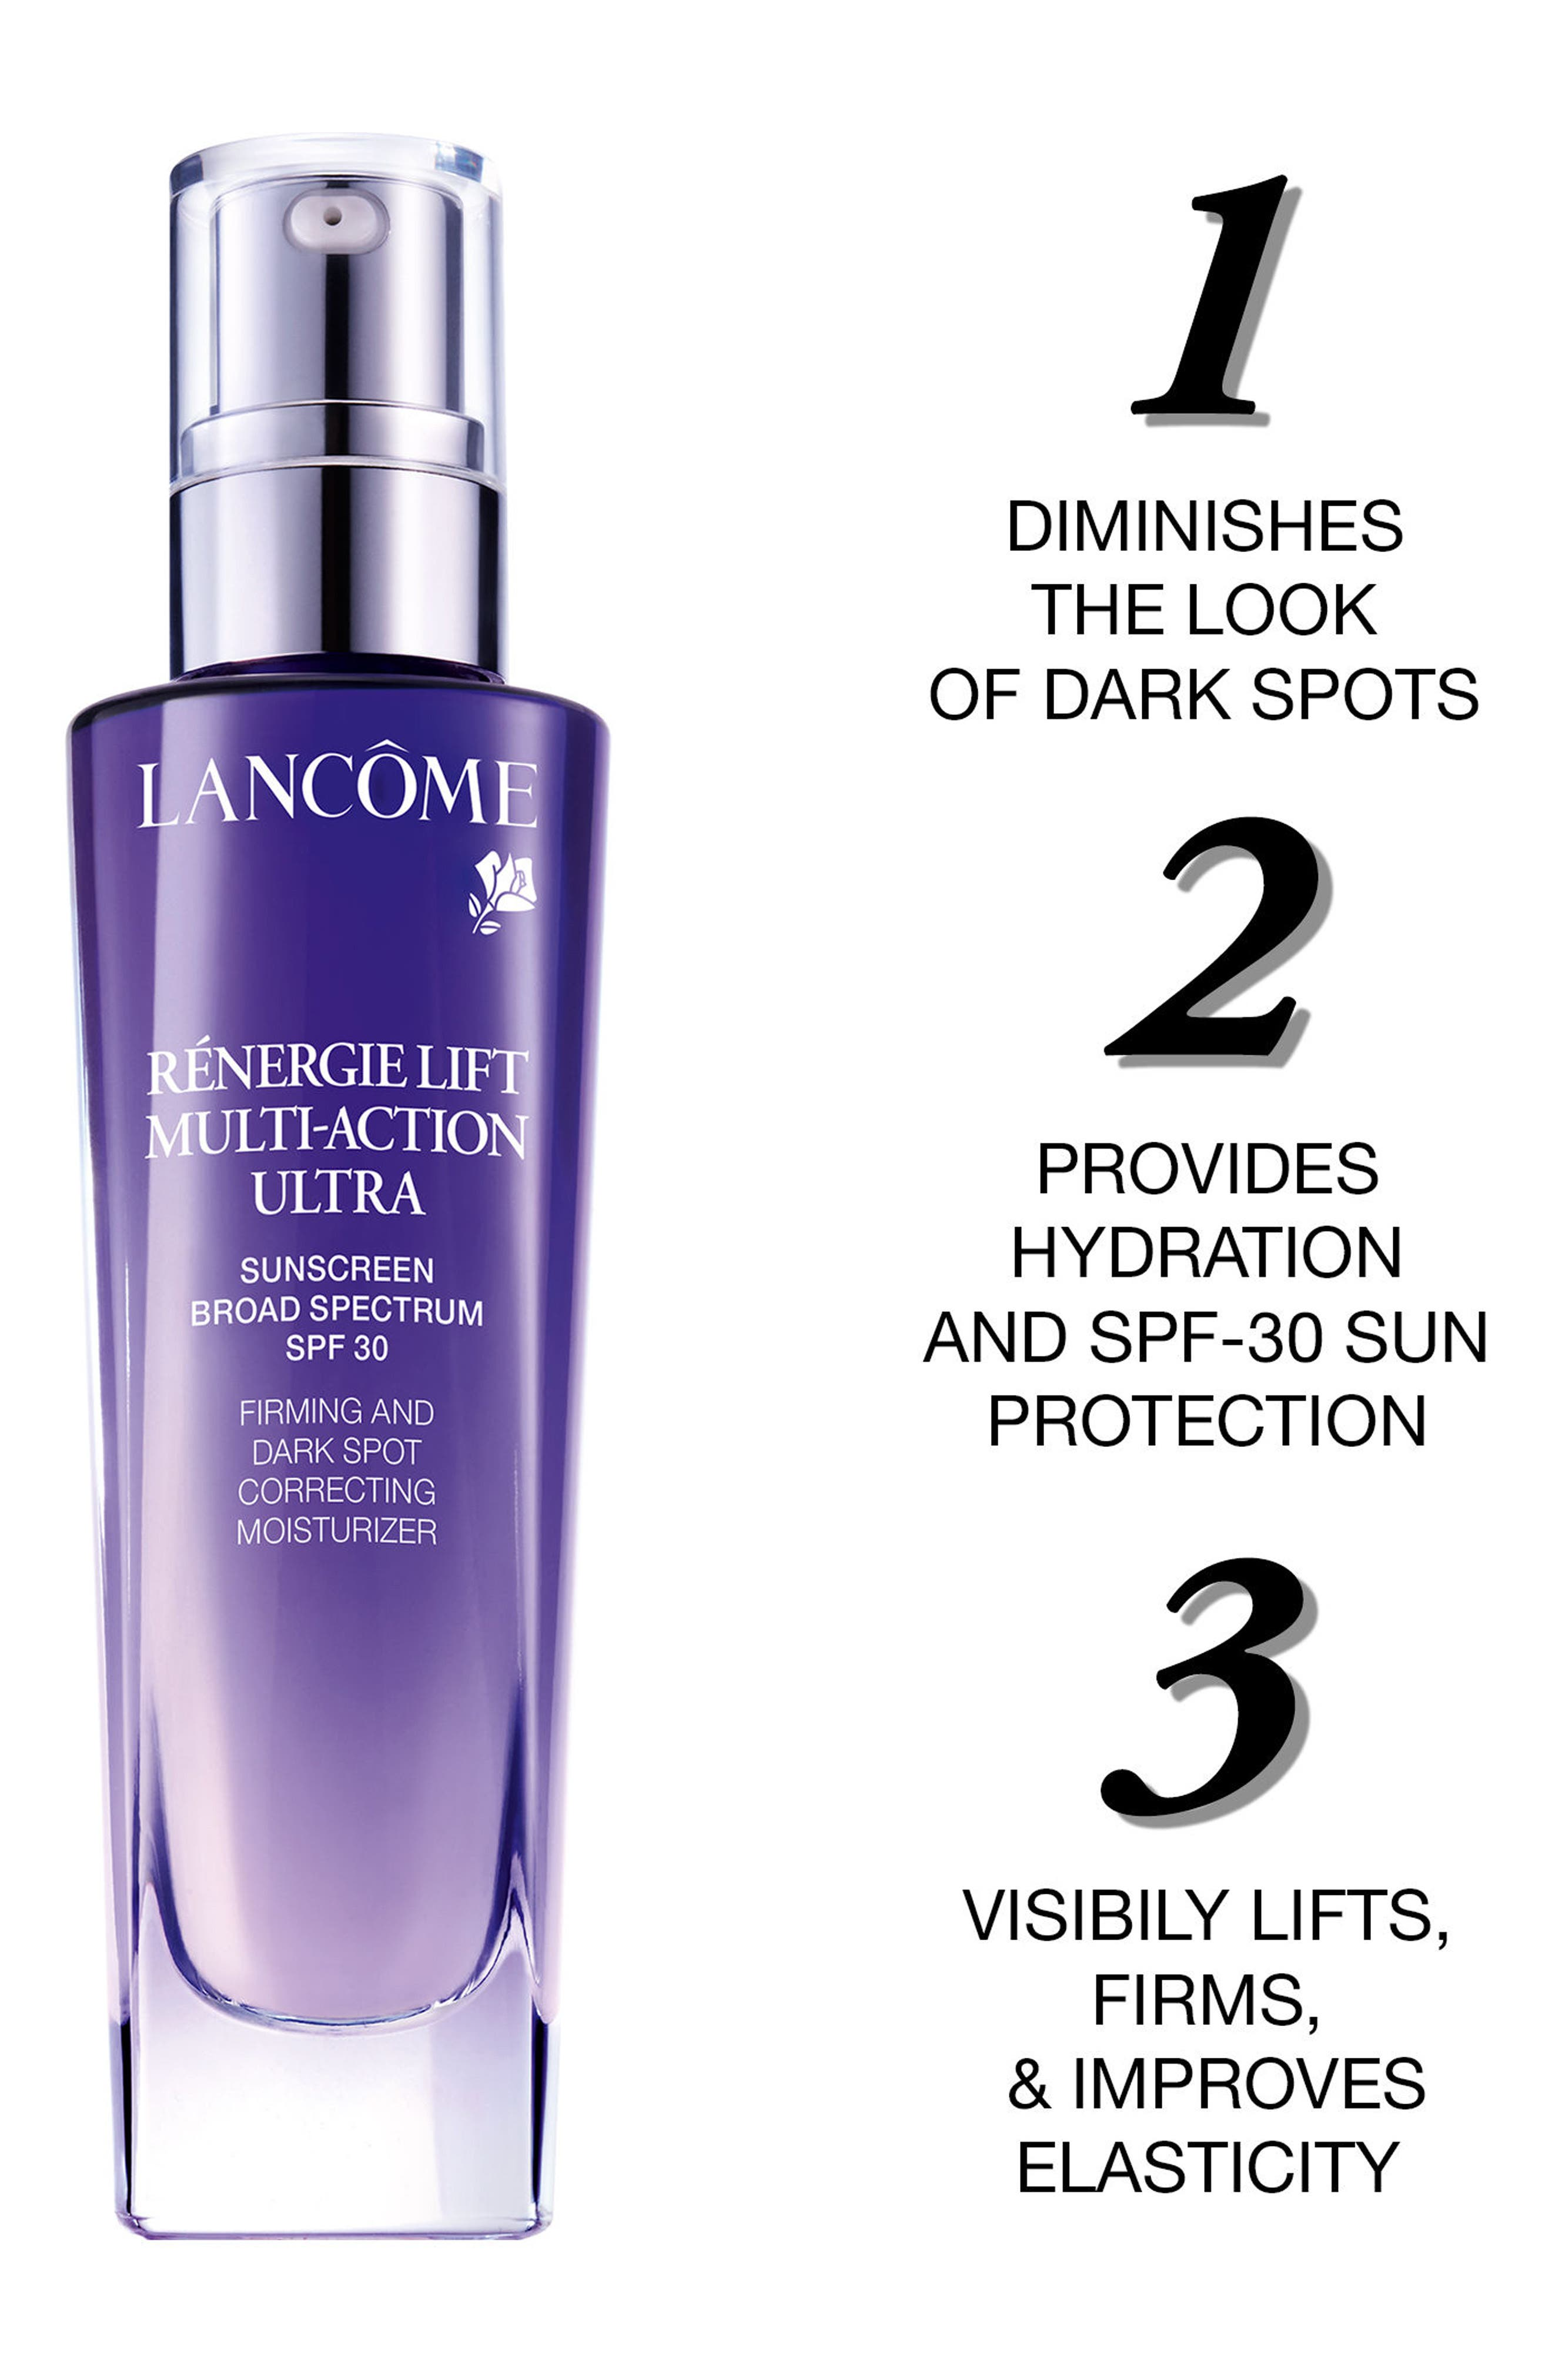 Rénergie Lift Multi-Action Ultra Firming and Dark Spot Correcting Moisturizer SPF 30,                             Alternate thumbnail 3, color,                             No Color